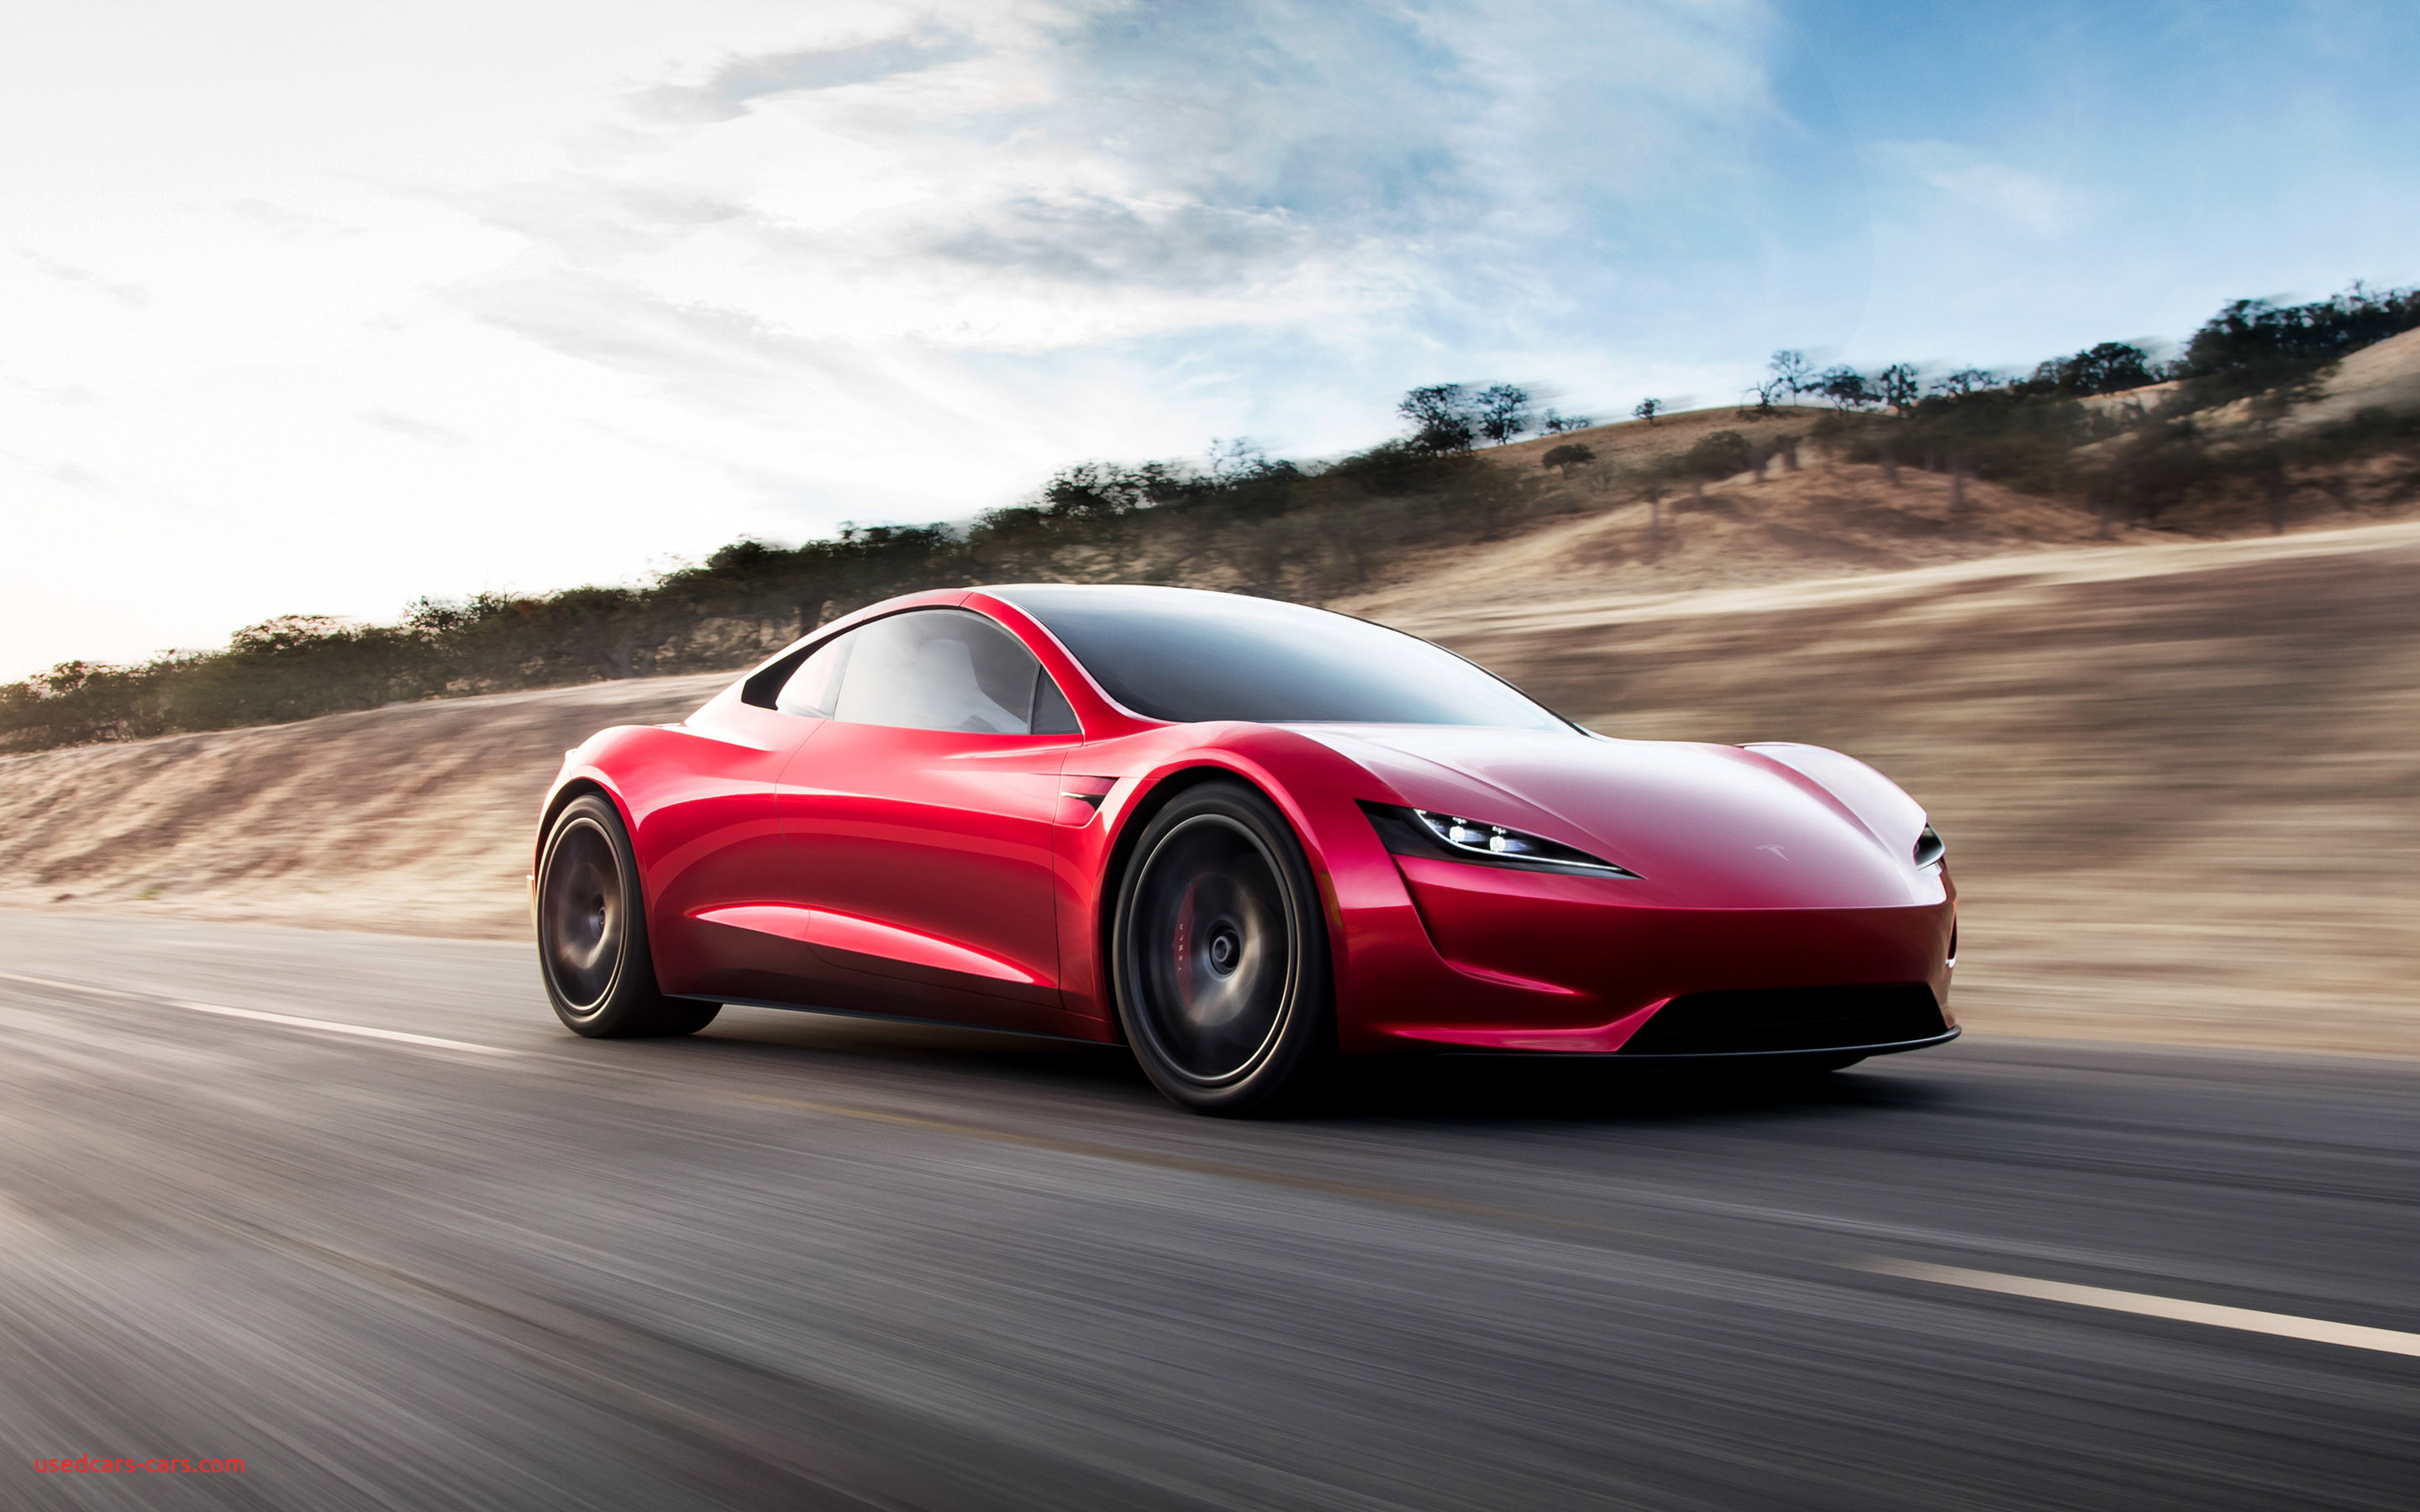 Where Tesla Car Made New Tesla Makes Surprise Debut Of Next Gen Roadster Pictures